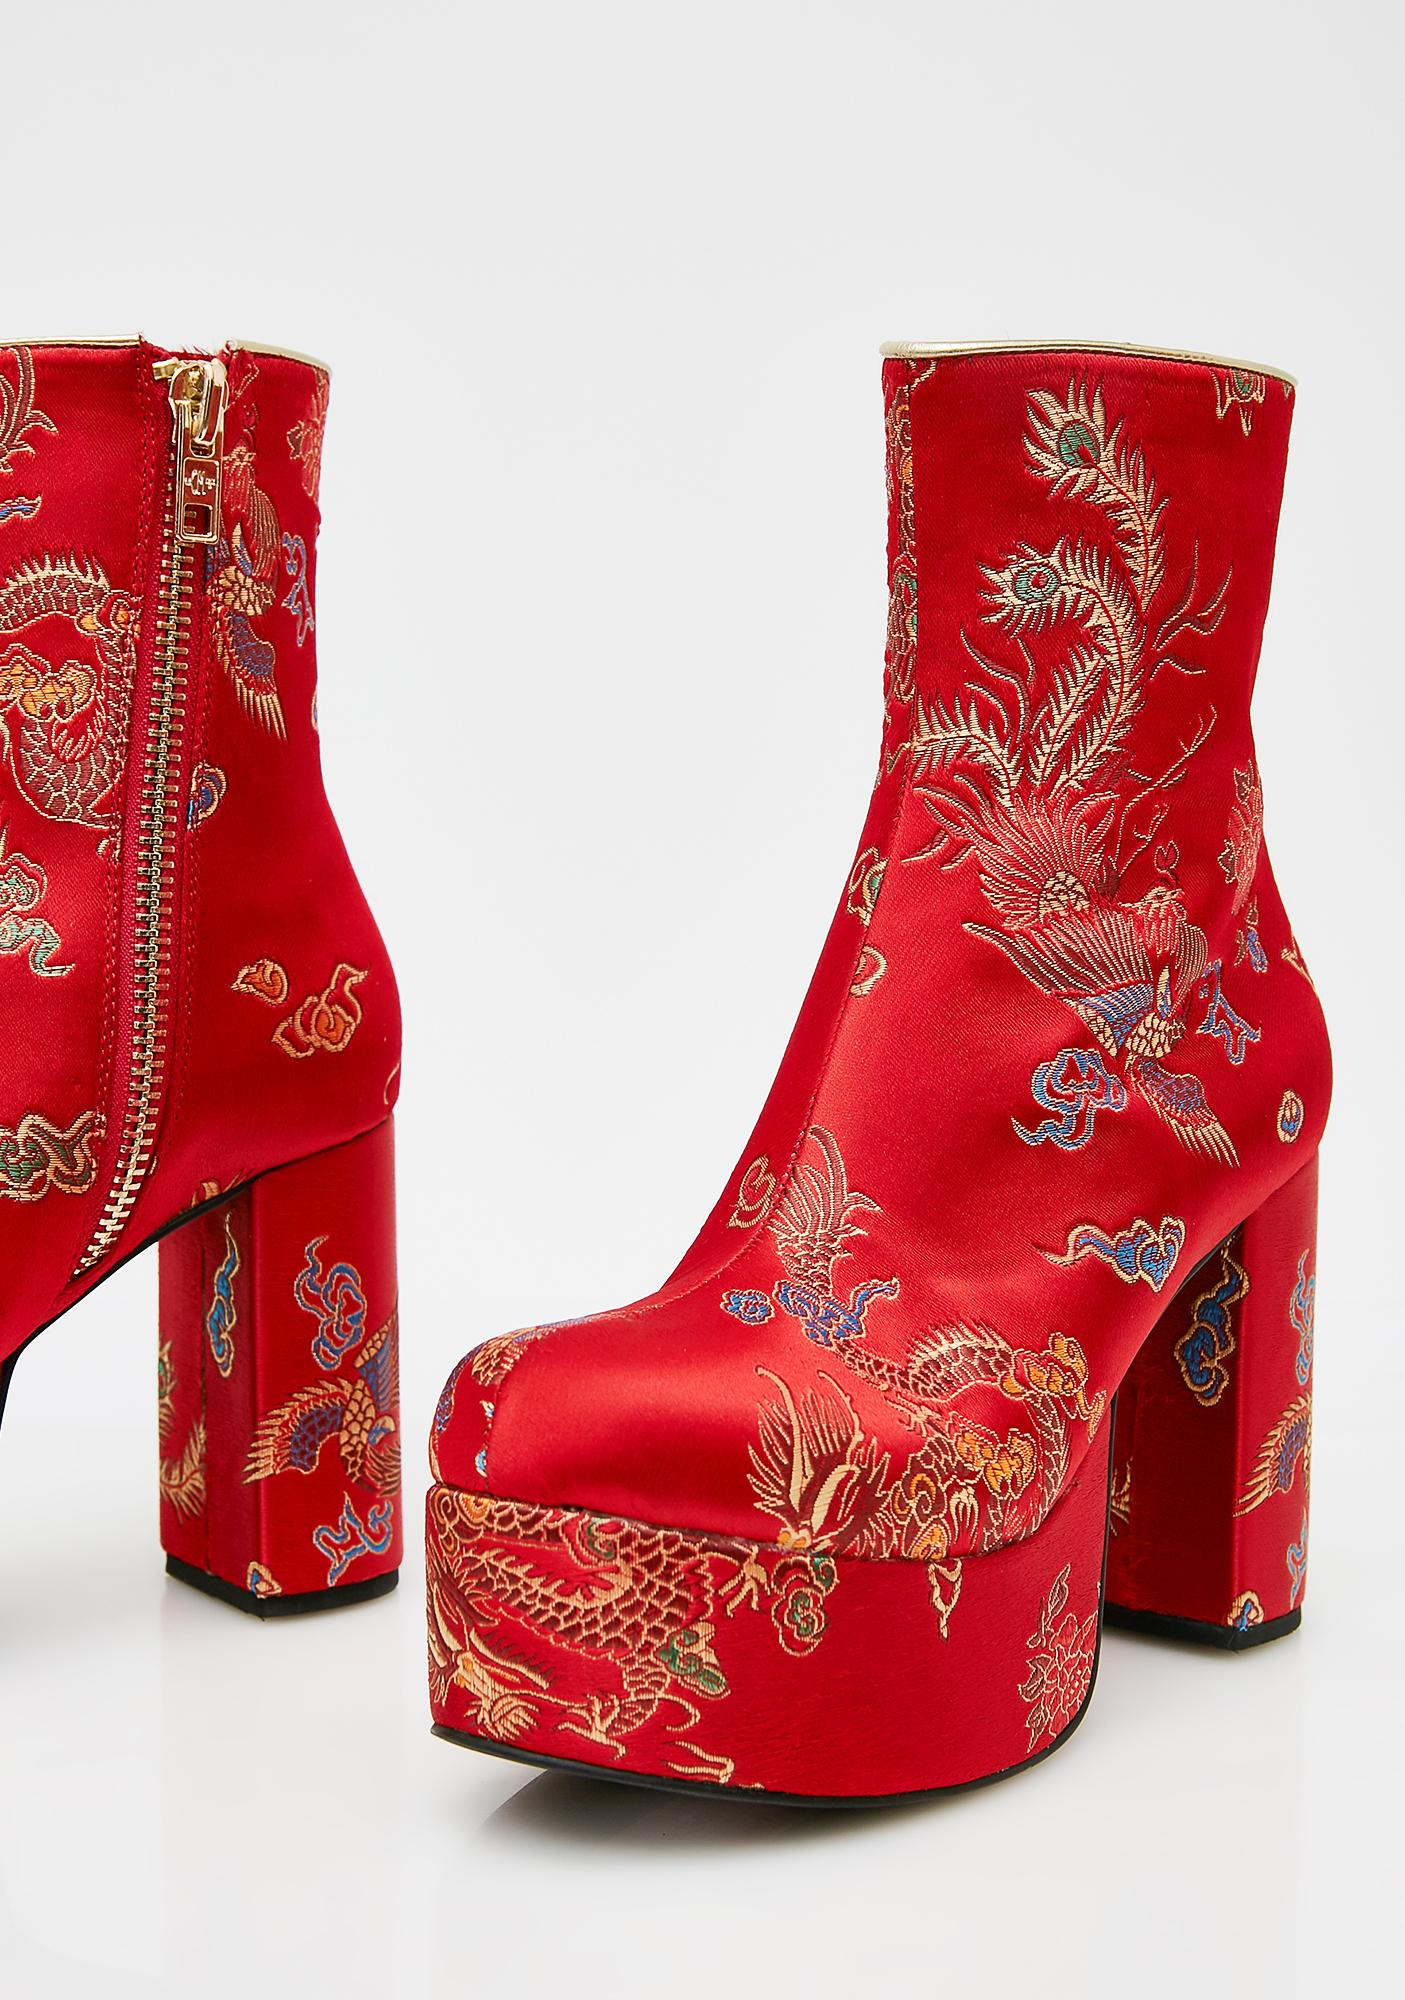 Current Mood Flame Spittin' Fiyah Brocade Boots